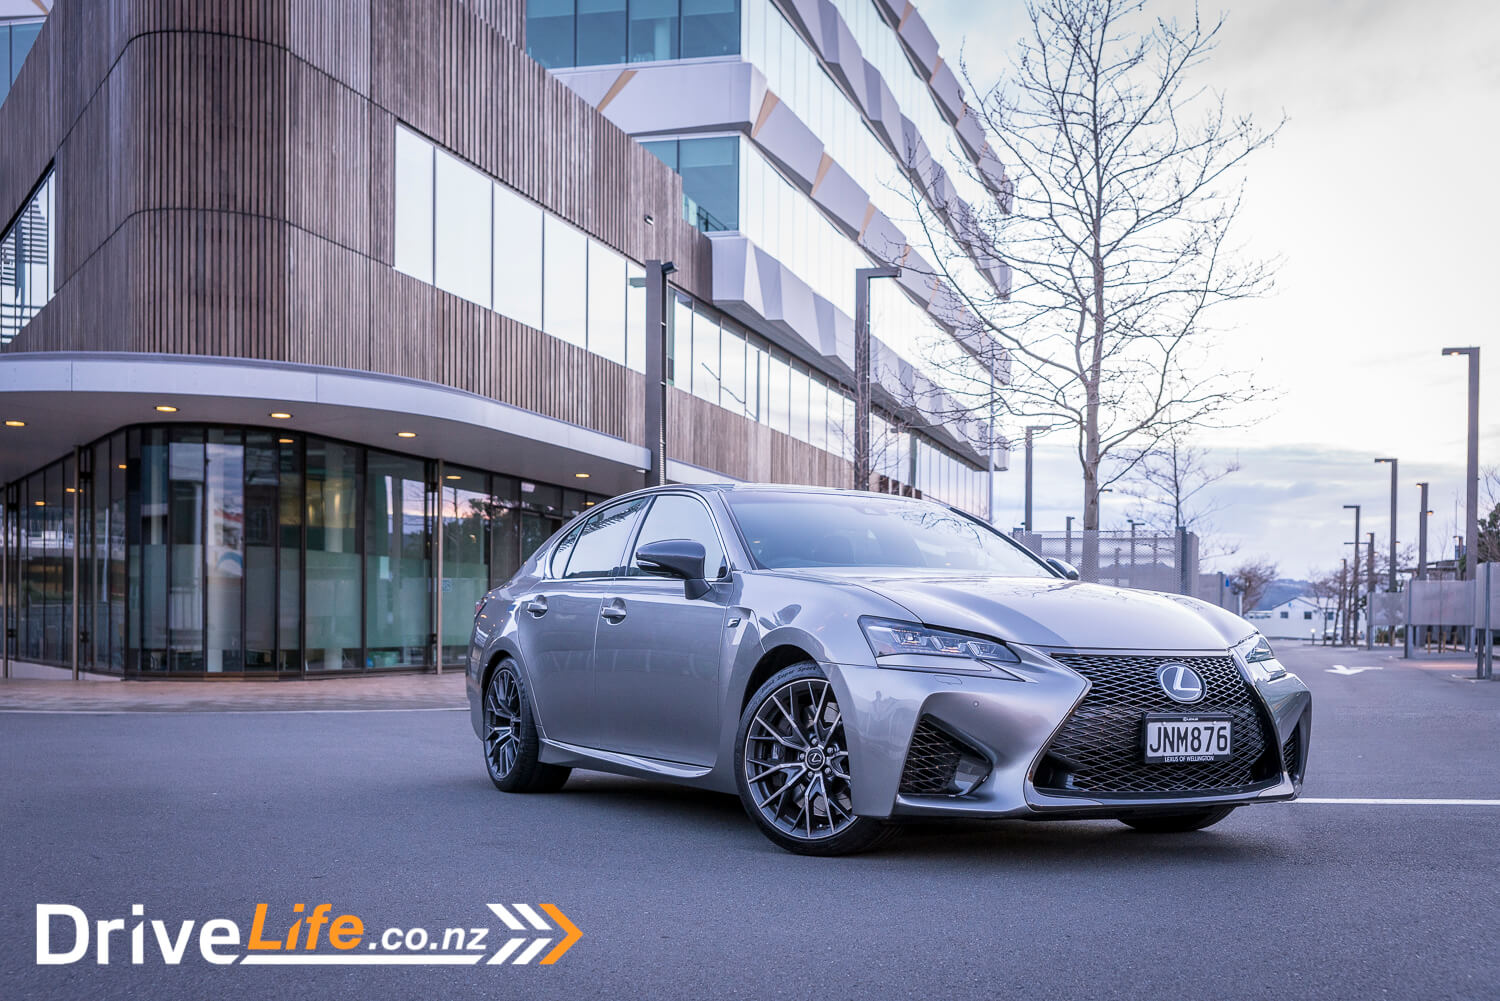 DriveLife-Car-Review-2016-Lexus-GS-F-12